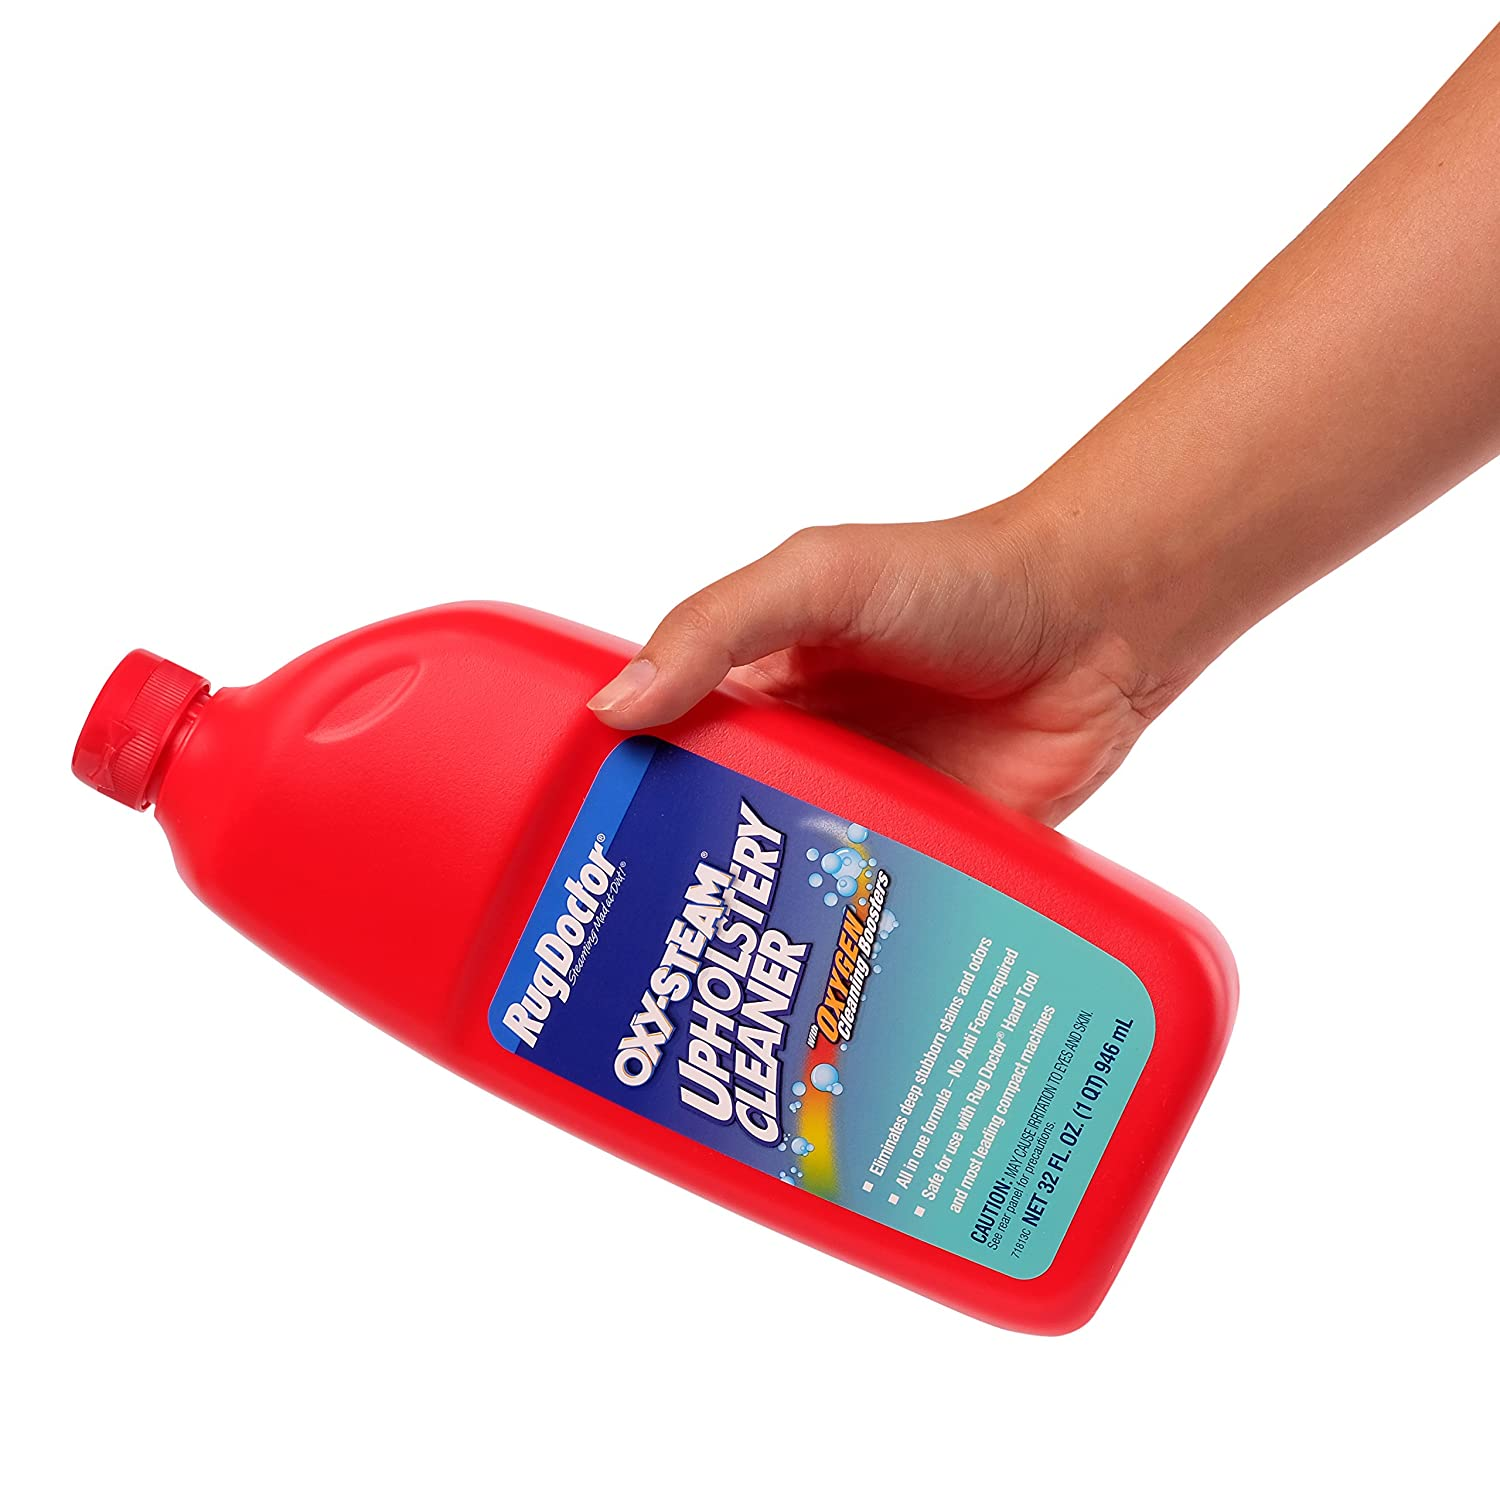 Amazon.com: Rug Doctor Oxy Steam Upholstery Cleaner Solution, Deep Cleans  And Extracts Stains And Dirt From Upholstery And Soft Surfaces, 32 Oz.